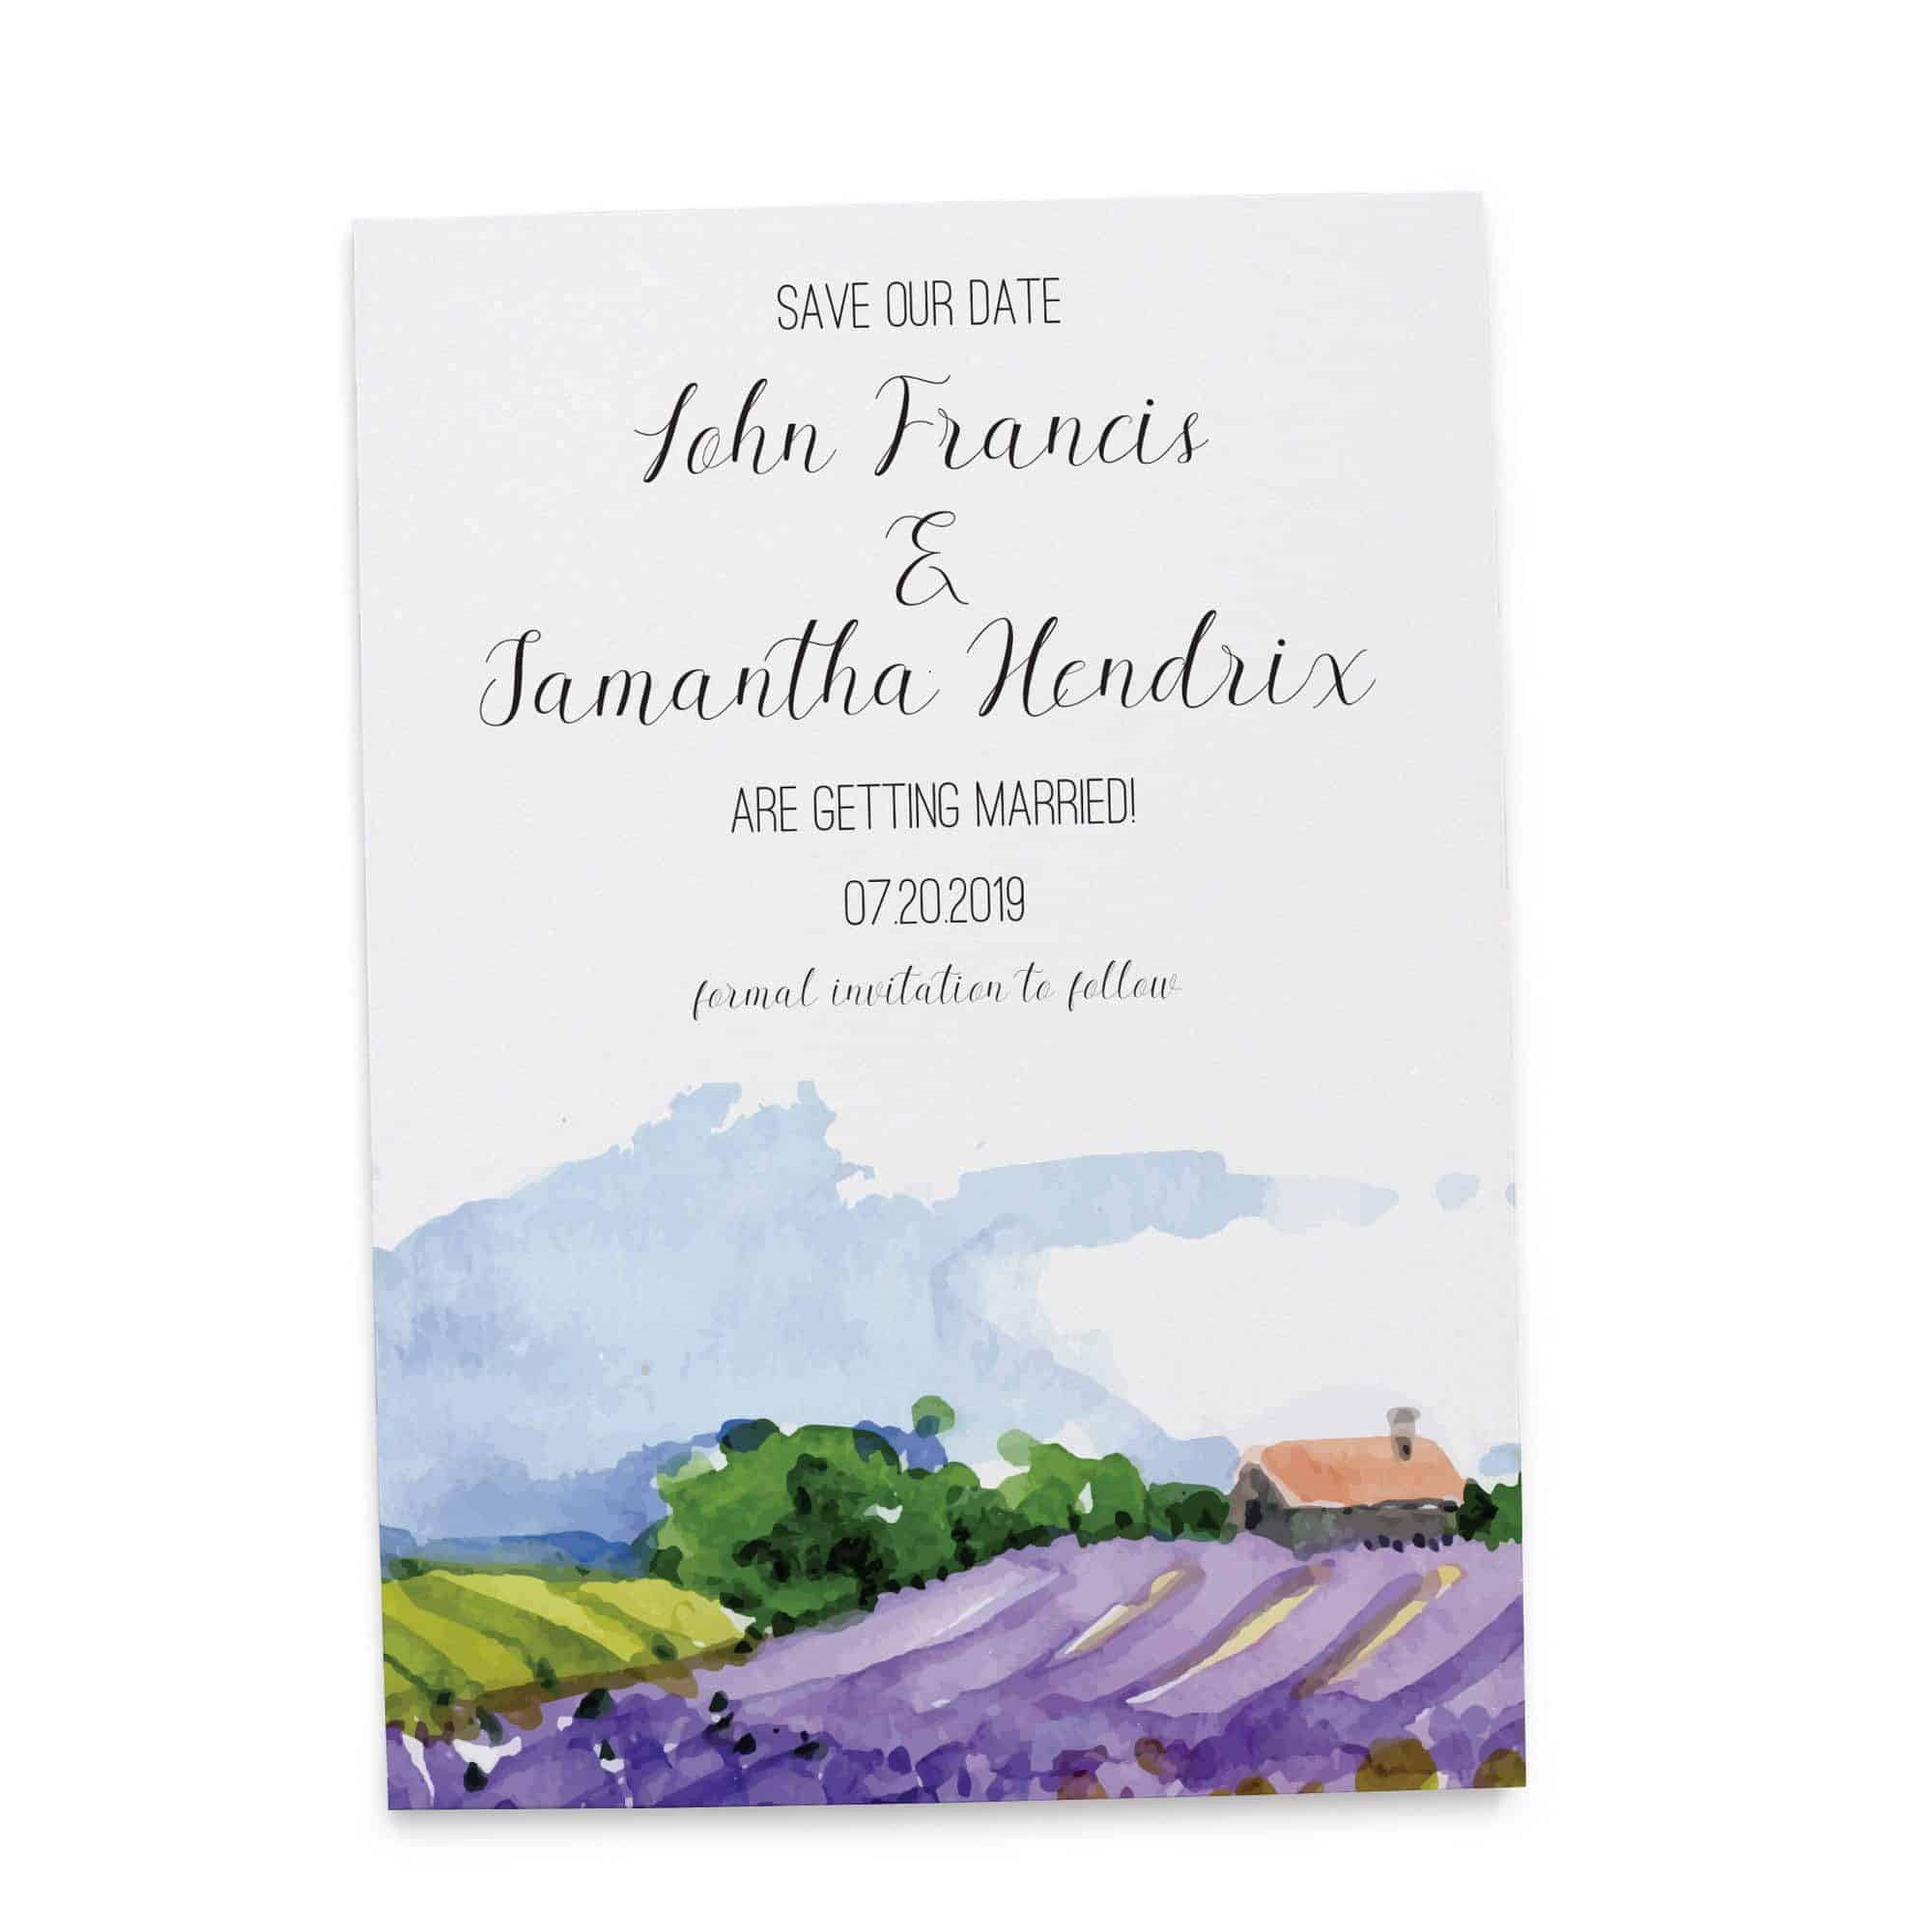 Save the Date Cards, Lavender Field Save the Date Wedding Cards